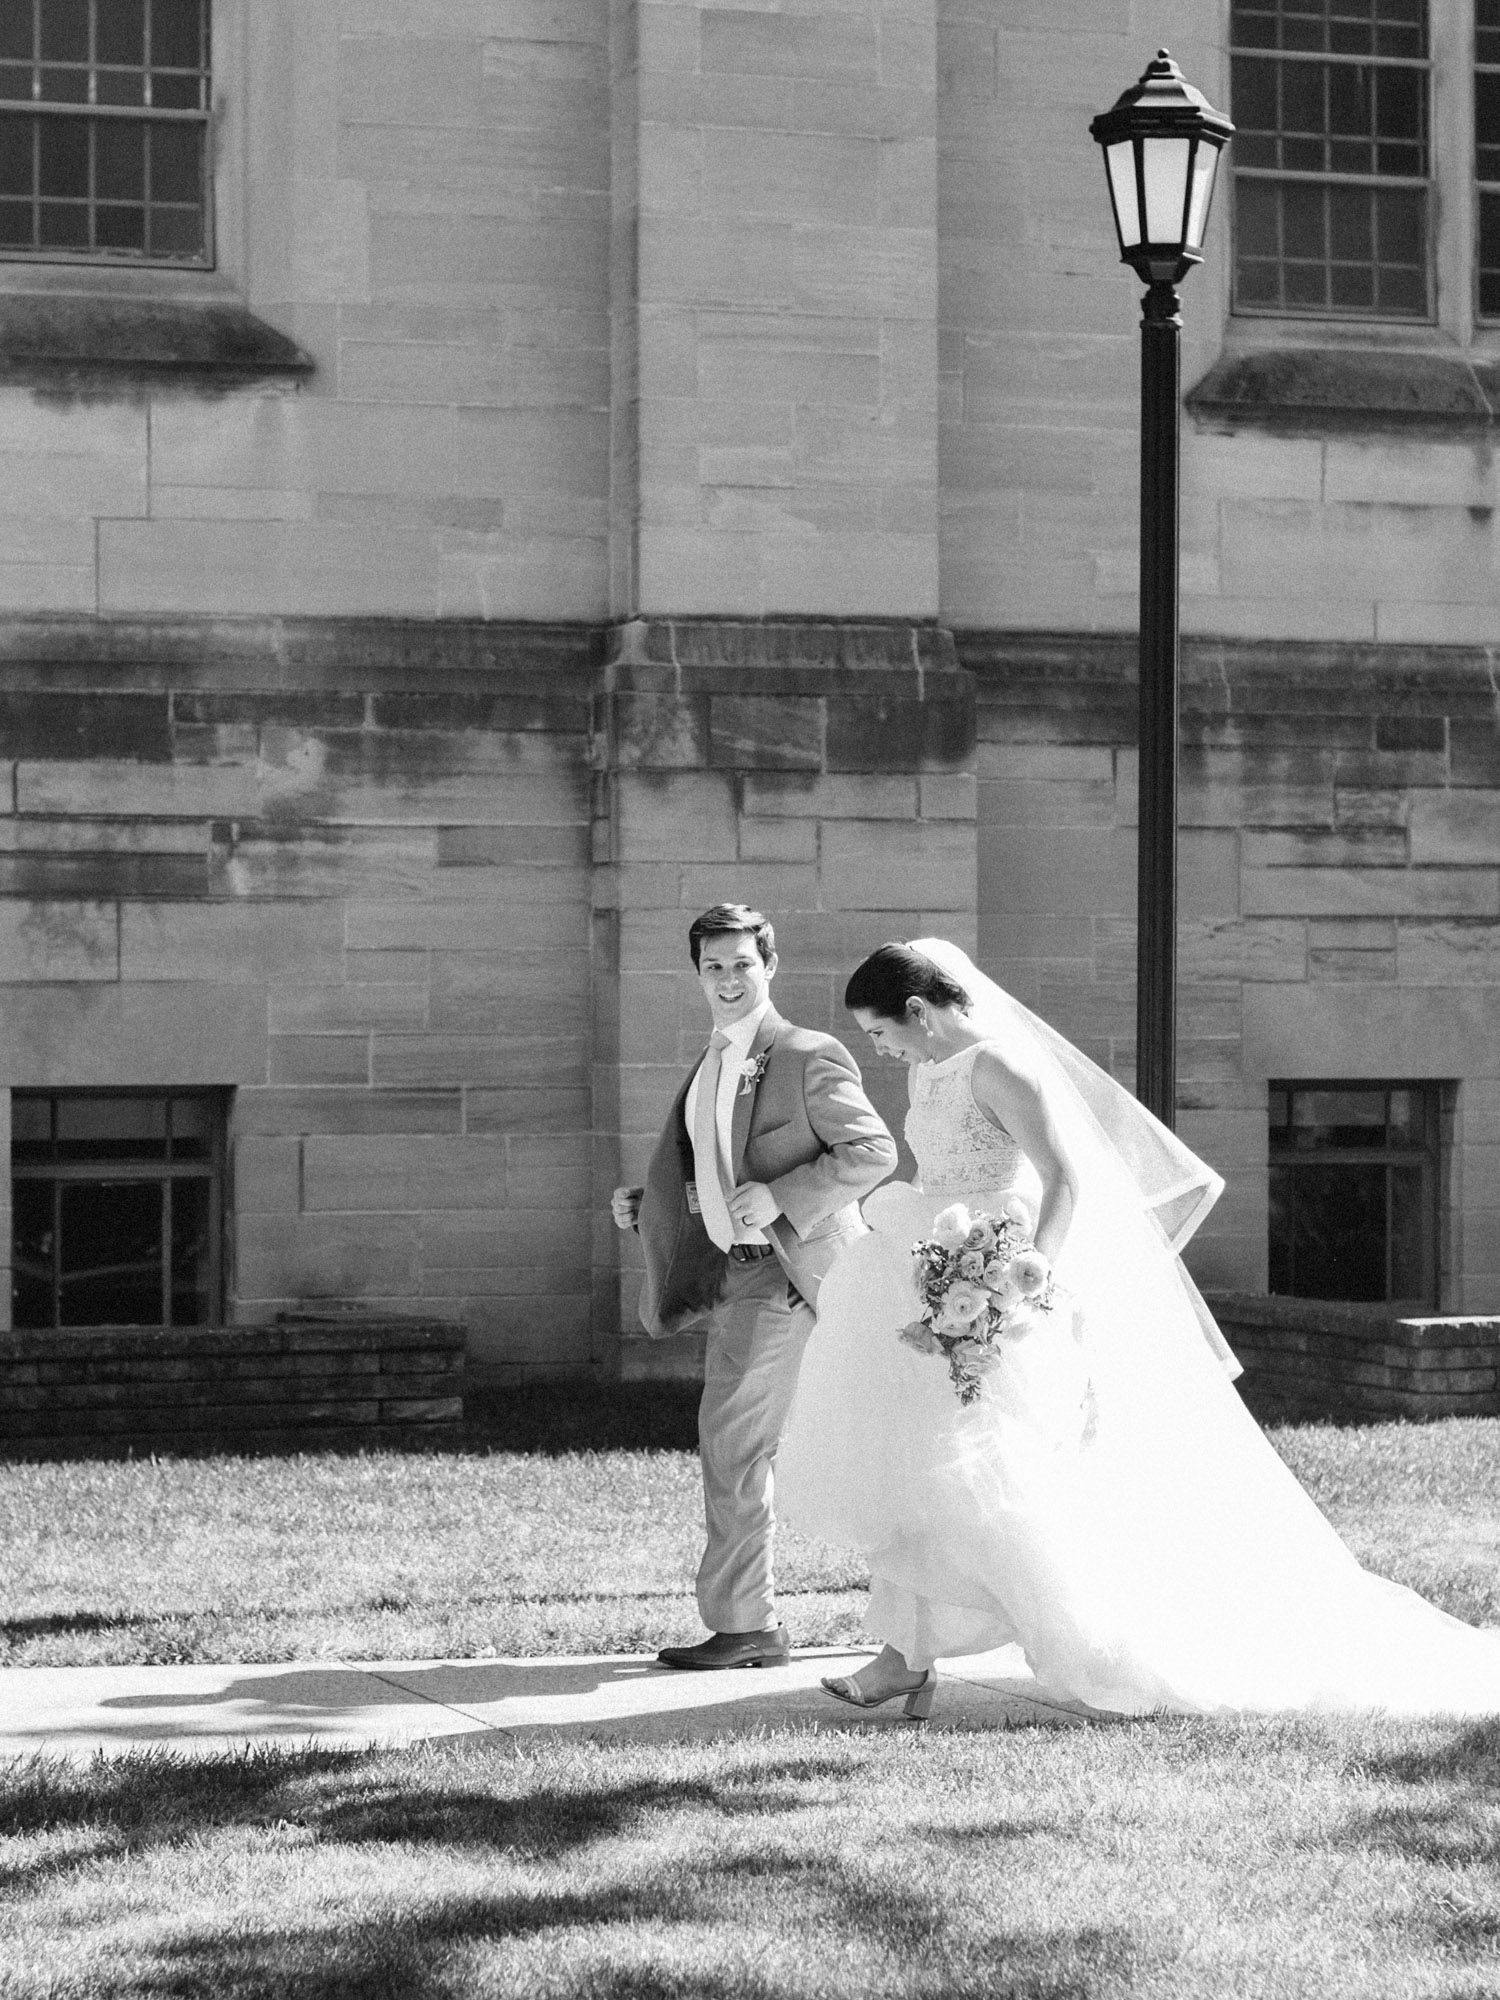 A joyful newlywed couple walks together outside their wedding venue in Ann Arbor, Michigan